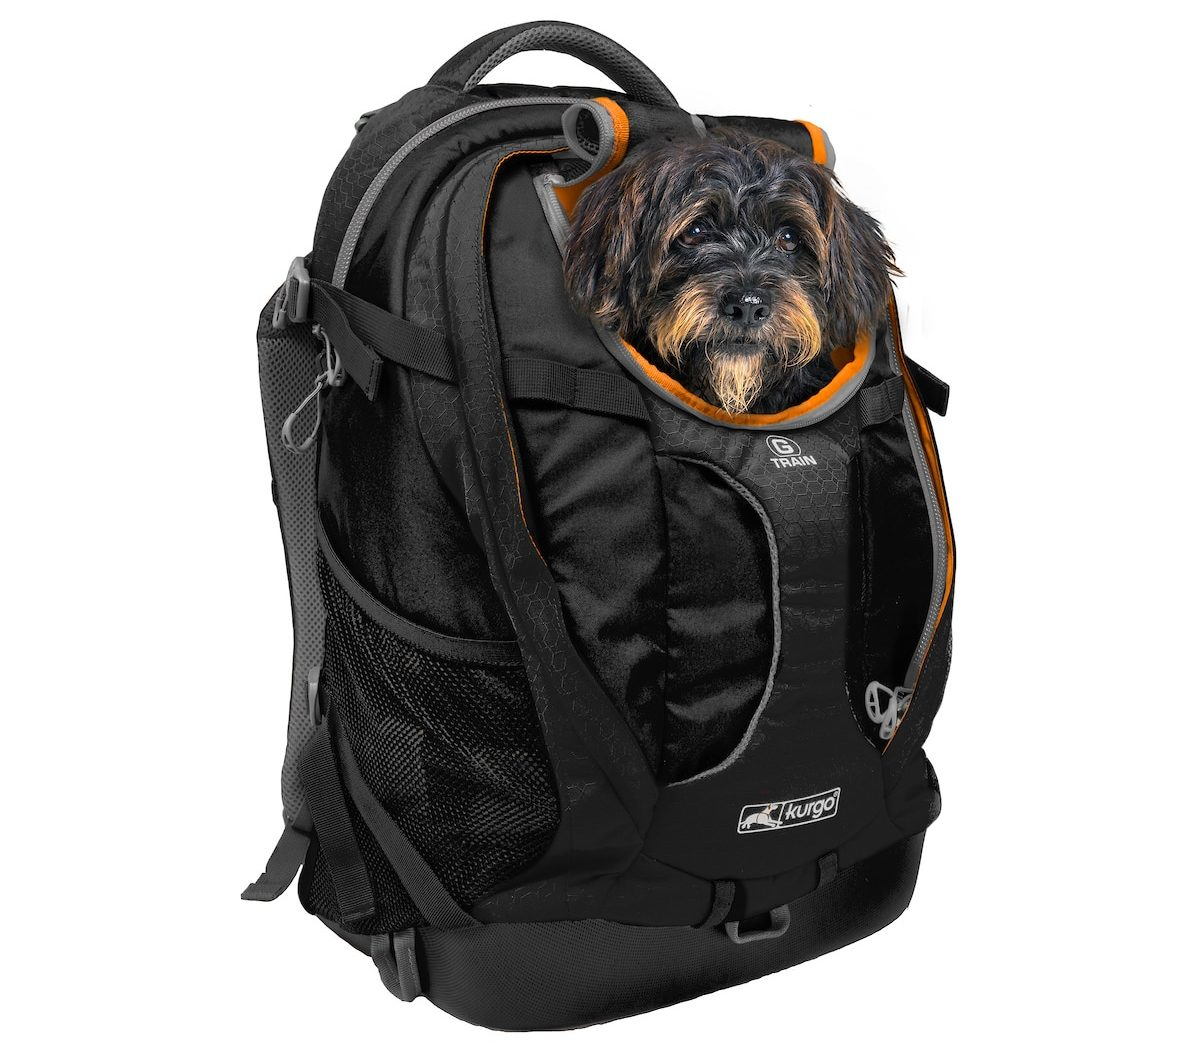 Photo of a small black Terrier with brown highlights peeking out from the top hole of the black Kurgo Dog Carrier Backpack